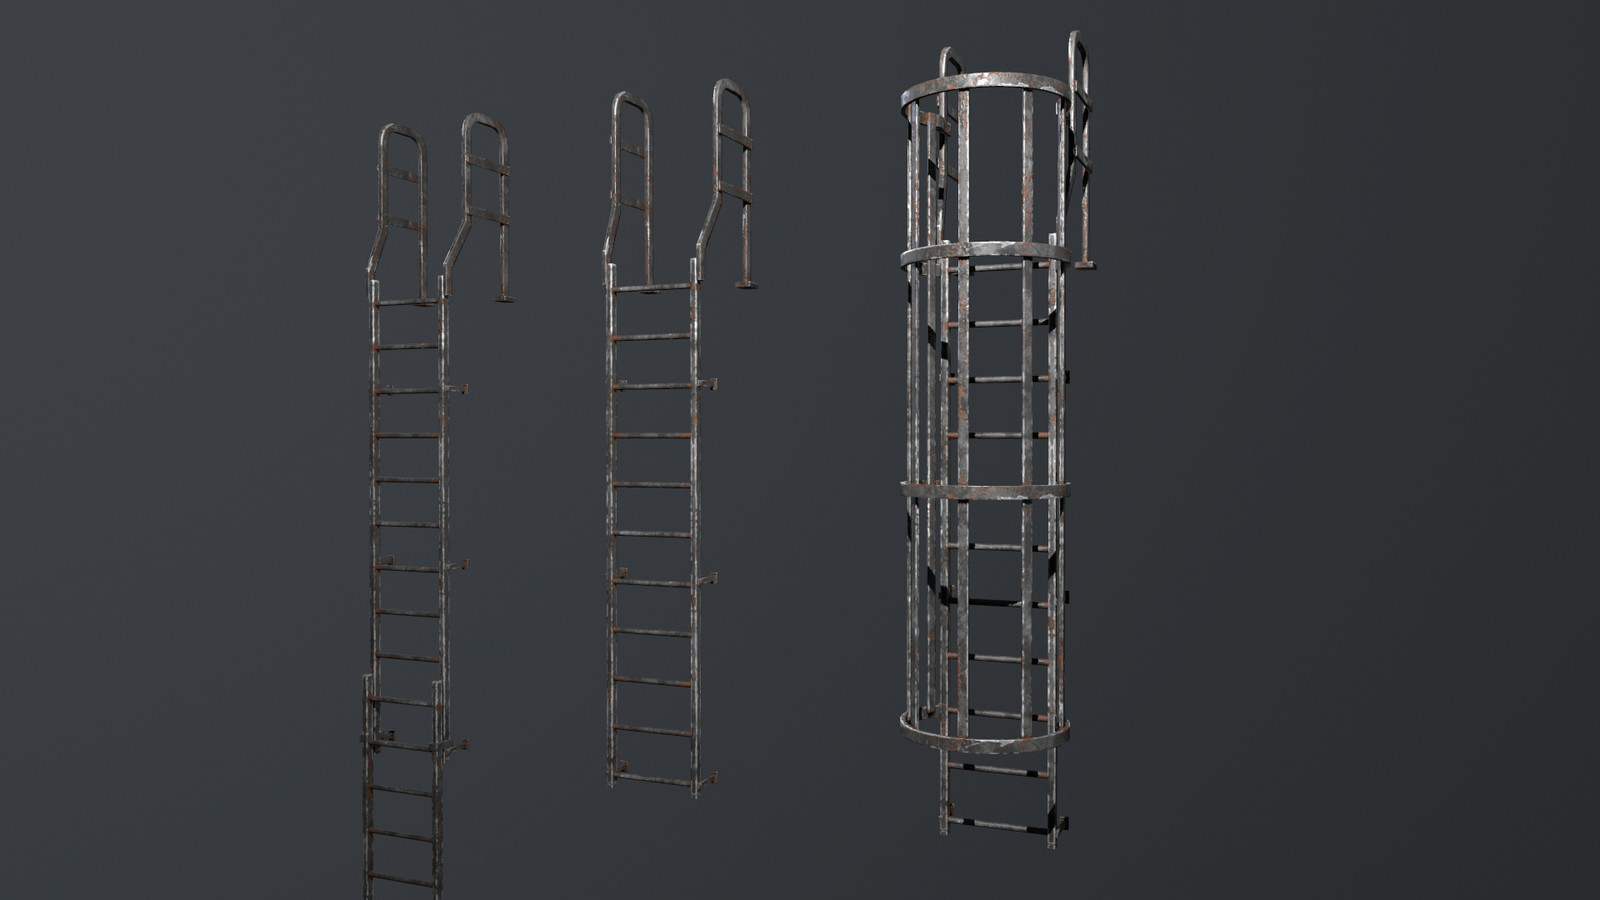 The ladder and fire escape kits were set up so the albedo could be tinted for colour variation along the buildings.